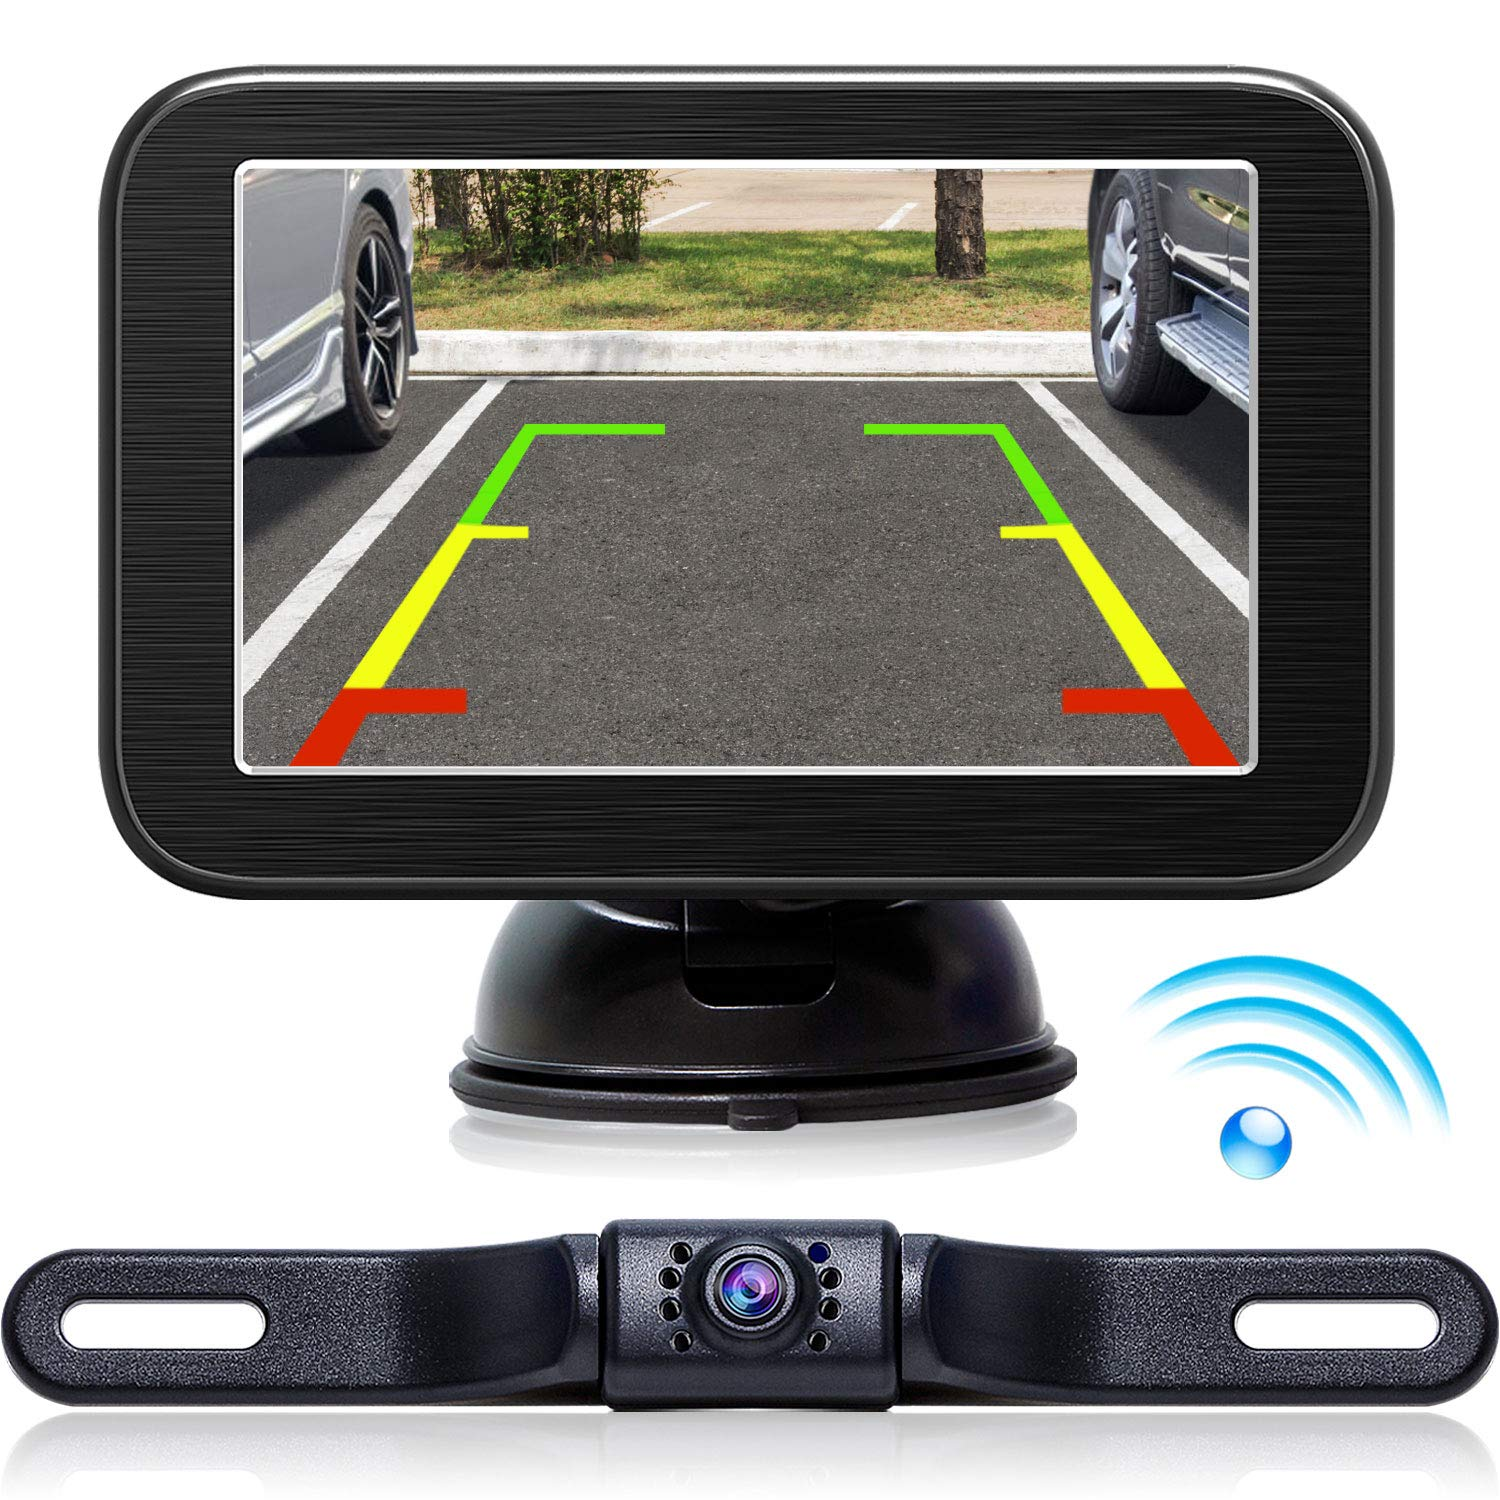 Wireless Backup Camera with Monitor System 5'' LCD Wireless Monitor Rearview Revering Rear View Back up Camera for Backing Parking Car Vehicle E5 eRapta E005